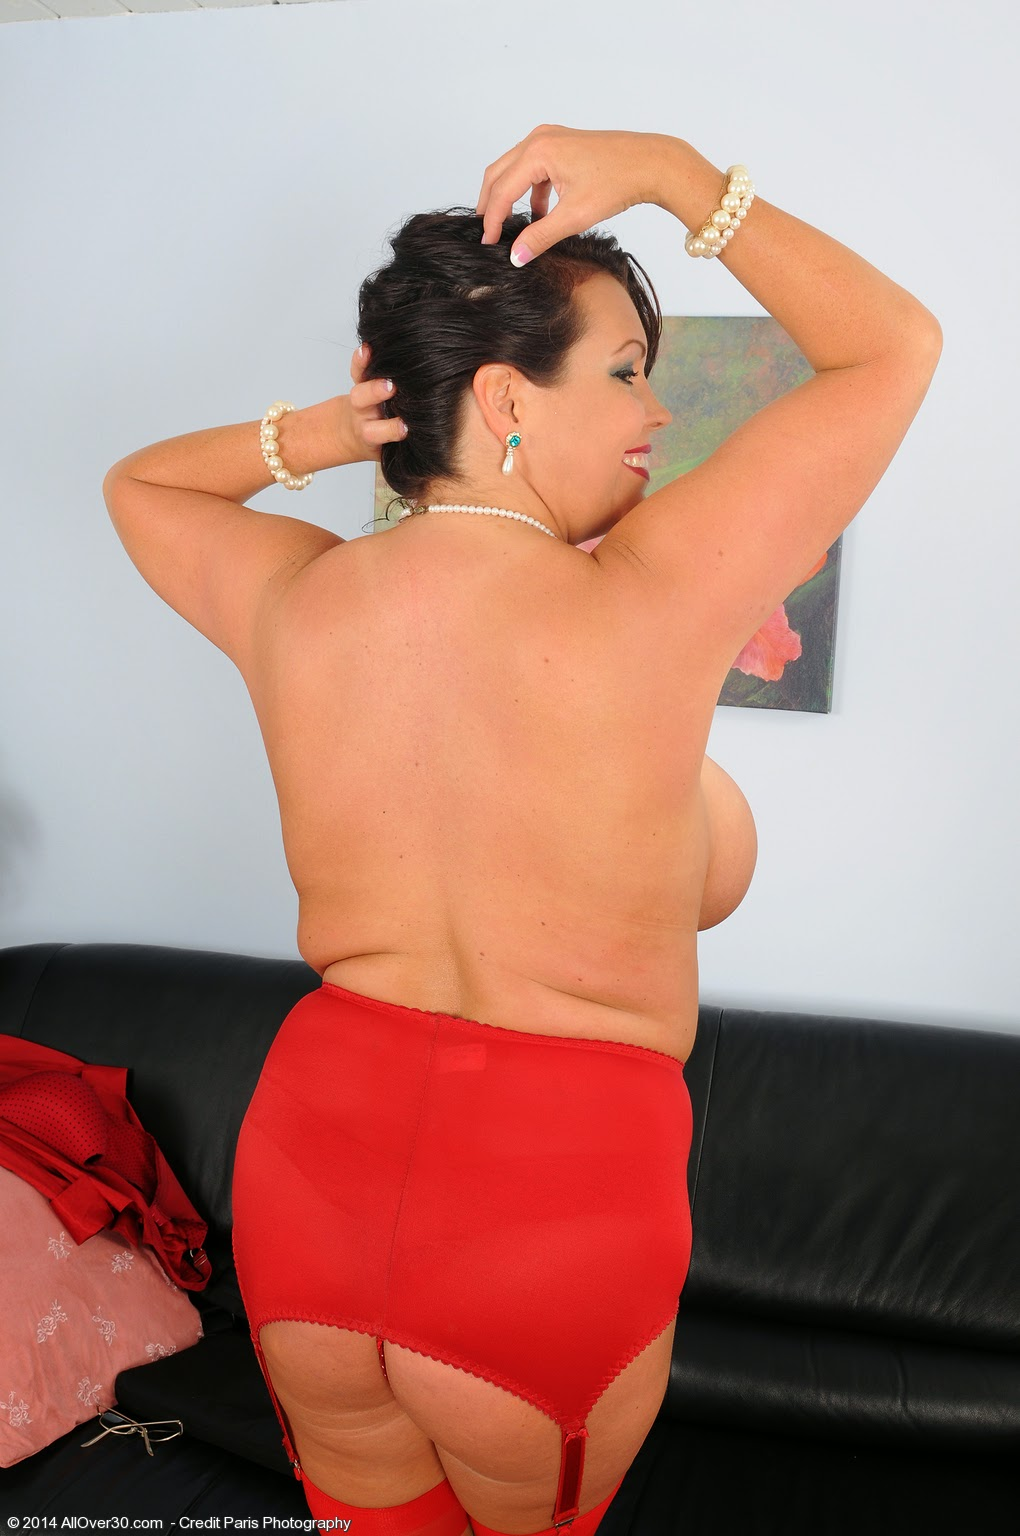 Angelica sin busty